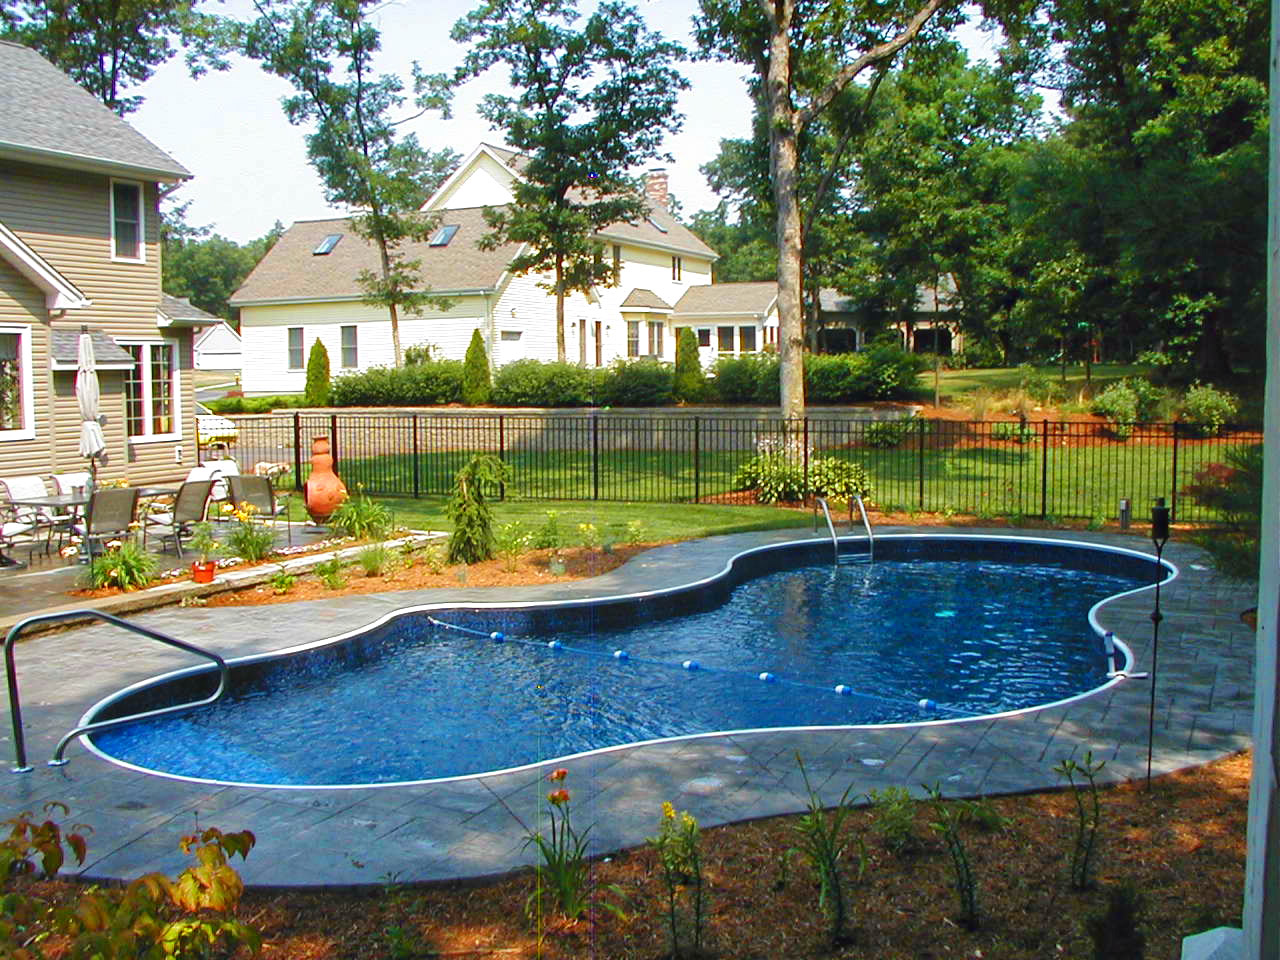 Underground Swimming Pool Designs inground swimming pool designs swimming pool designs In Ground Swimming Pool Design Installation Southington Cheshire